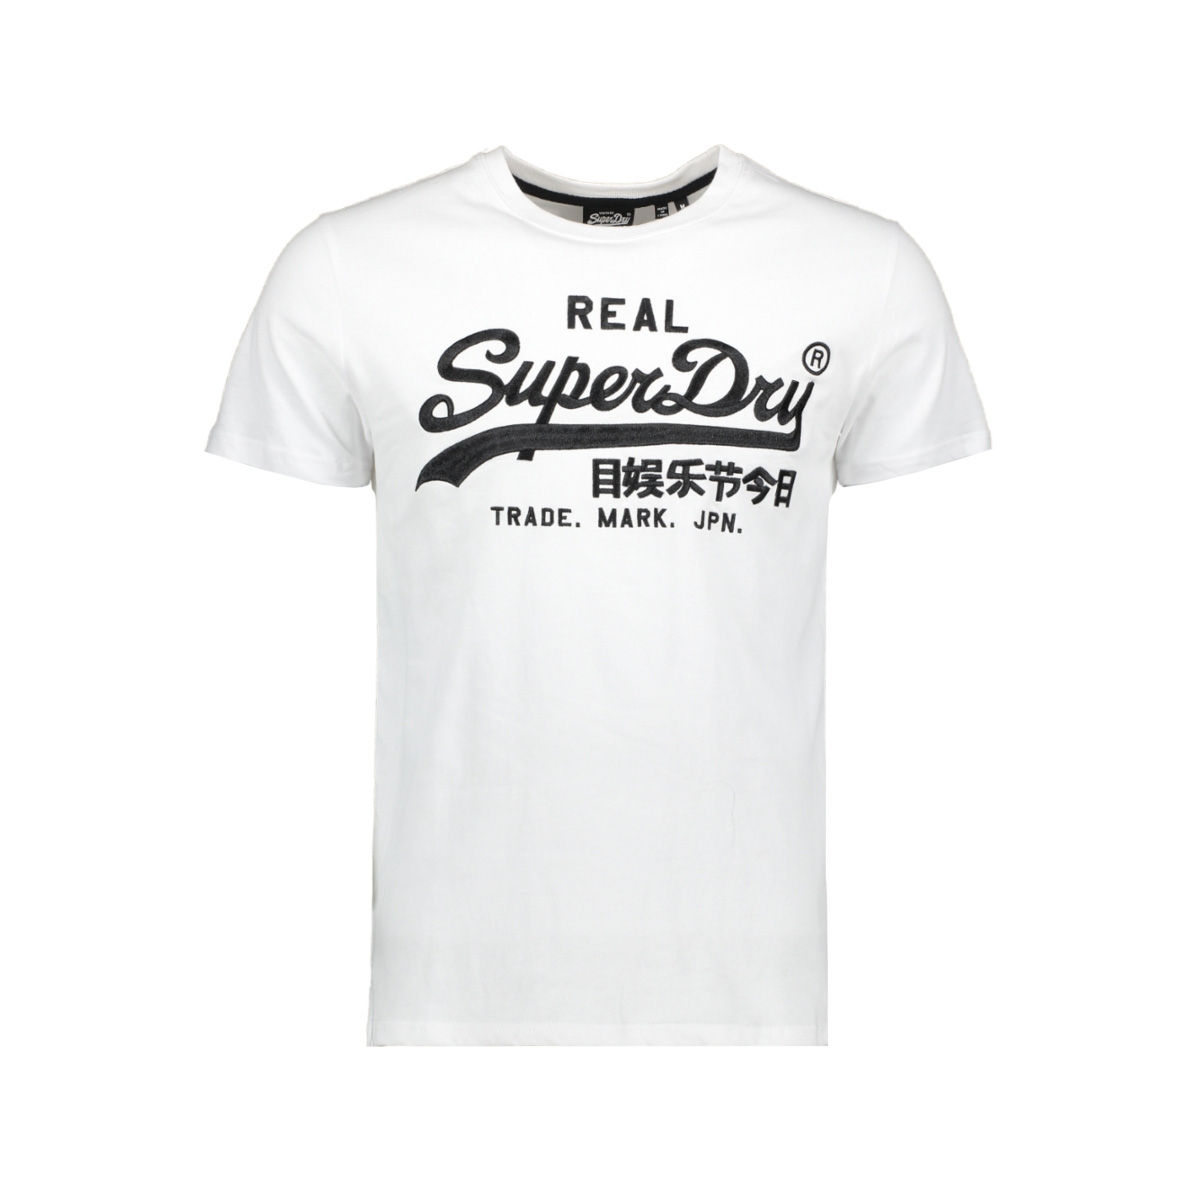 vl mono emb tee m1010303a superdry t-shirt optic